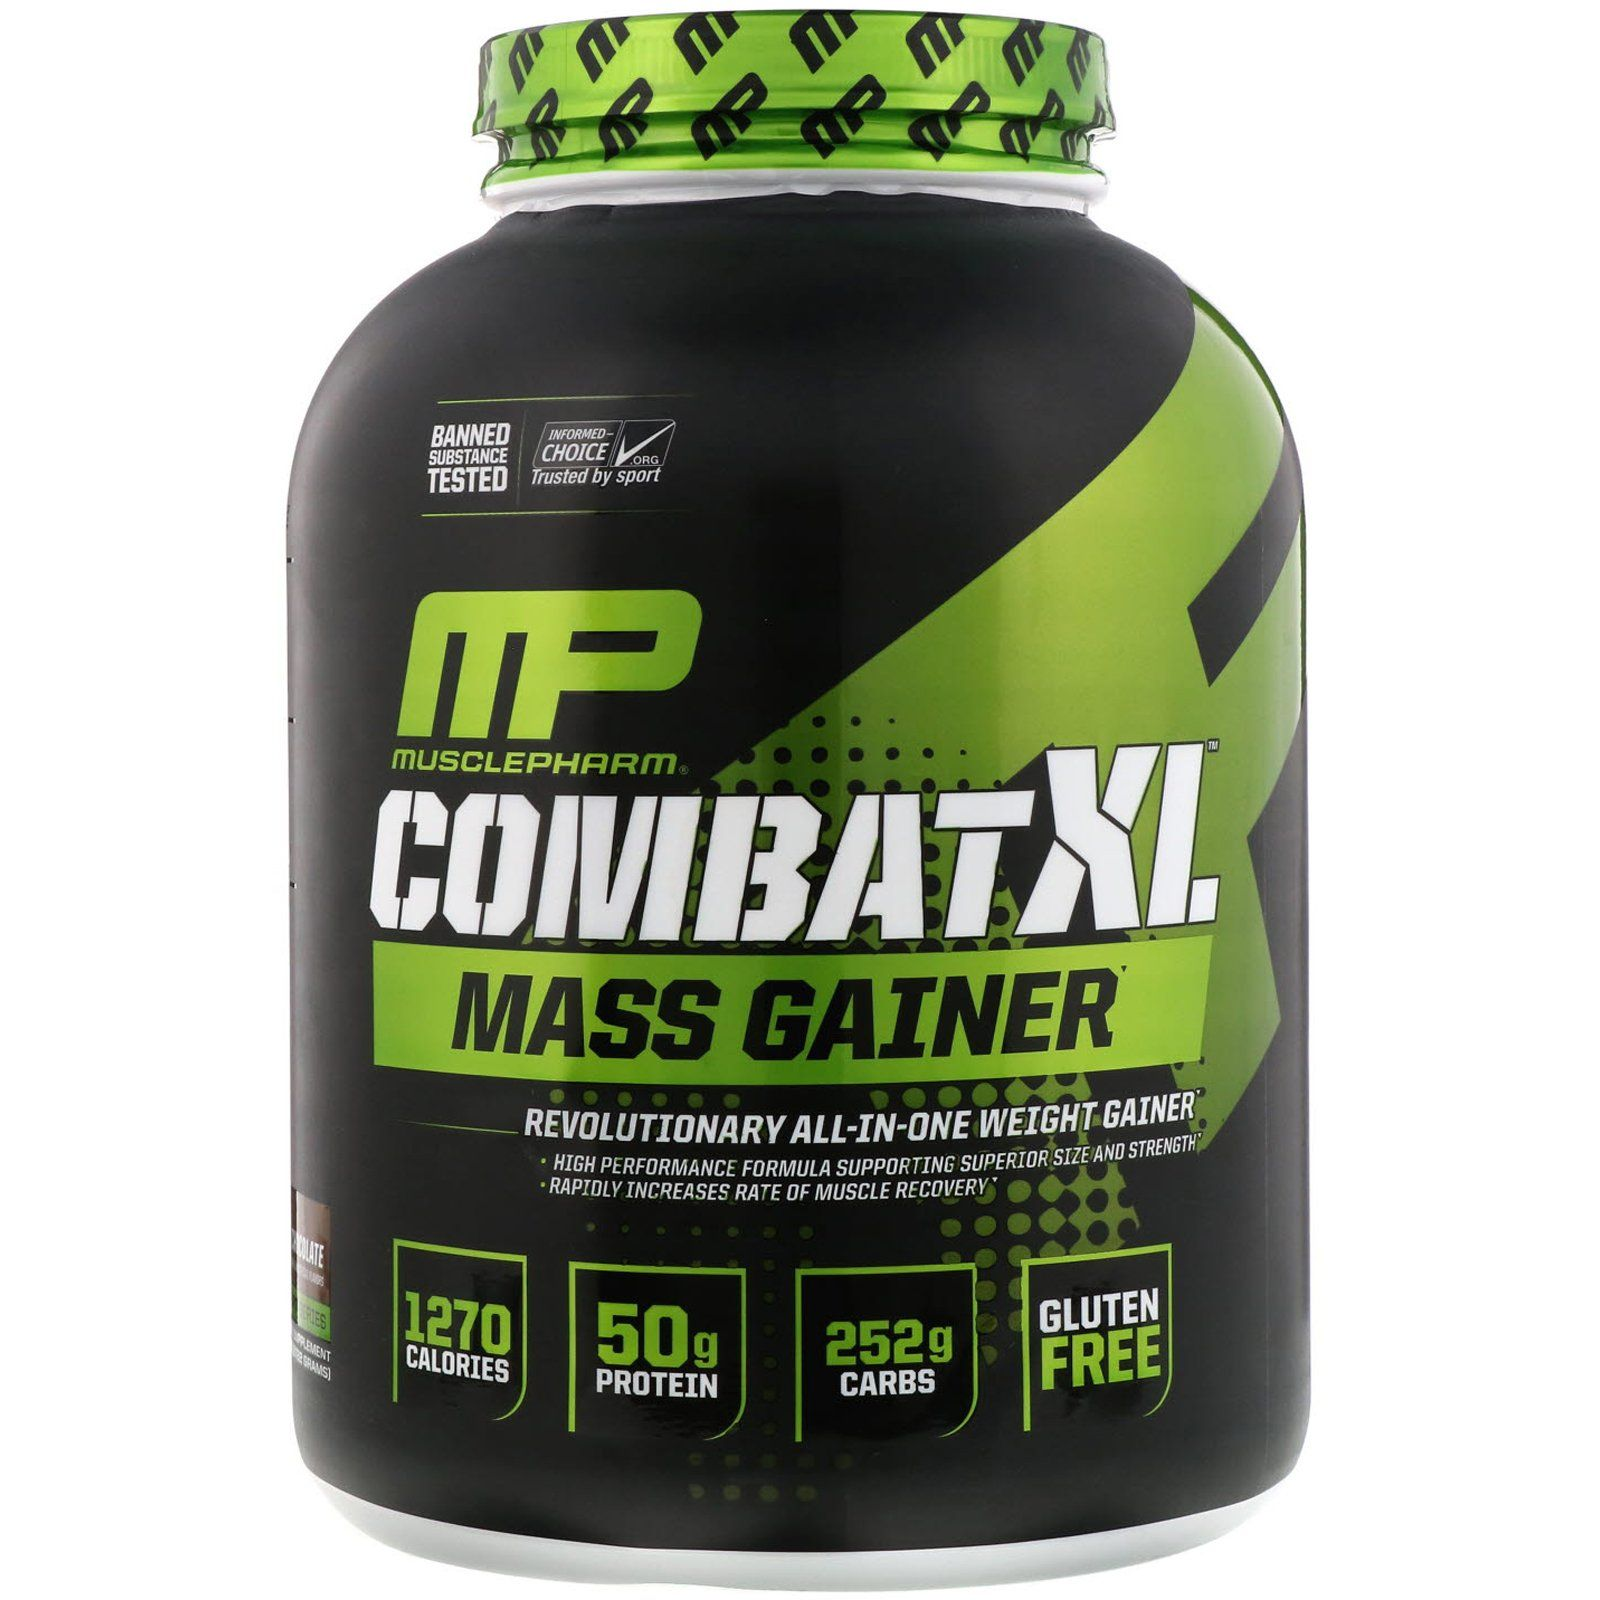 Musclepharm Combat Xl Mass Gainer Chocolate 6 Lbs 2722 G Muscle Pharm Mass Gainer Protein To Build Muscle